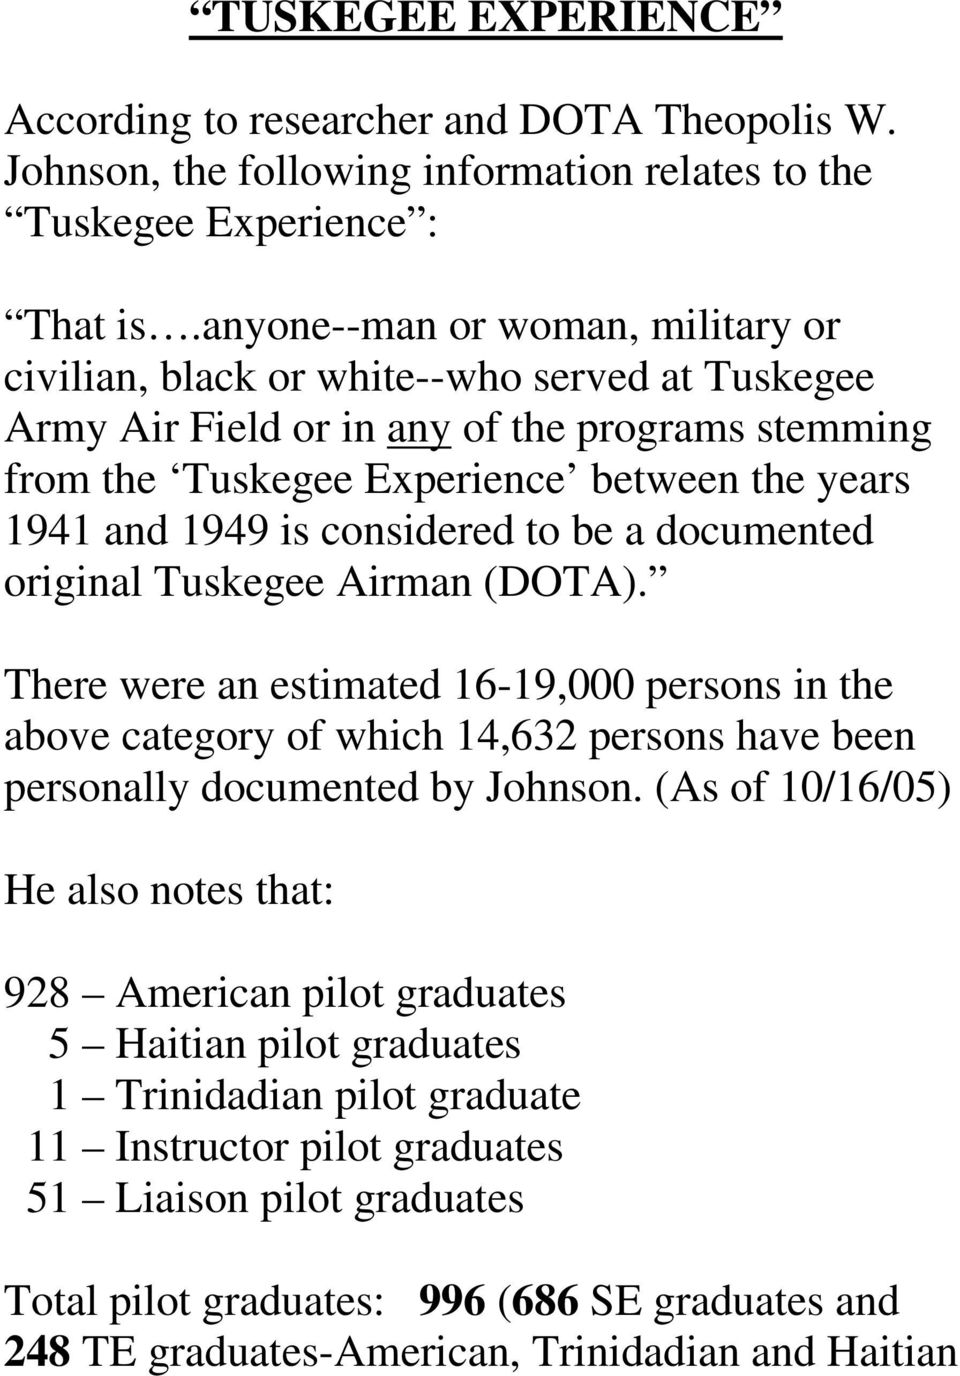 considered to be a documented original Tuskegee Airman (DOTA). There were an estimated 16-19,000 persons in the above category of which 14,632 persons have been personally documented by Johnson.